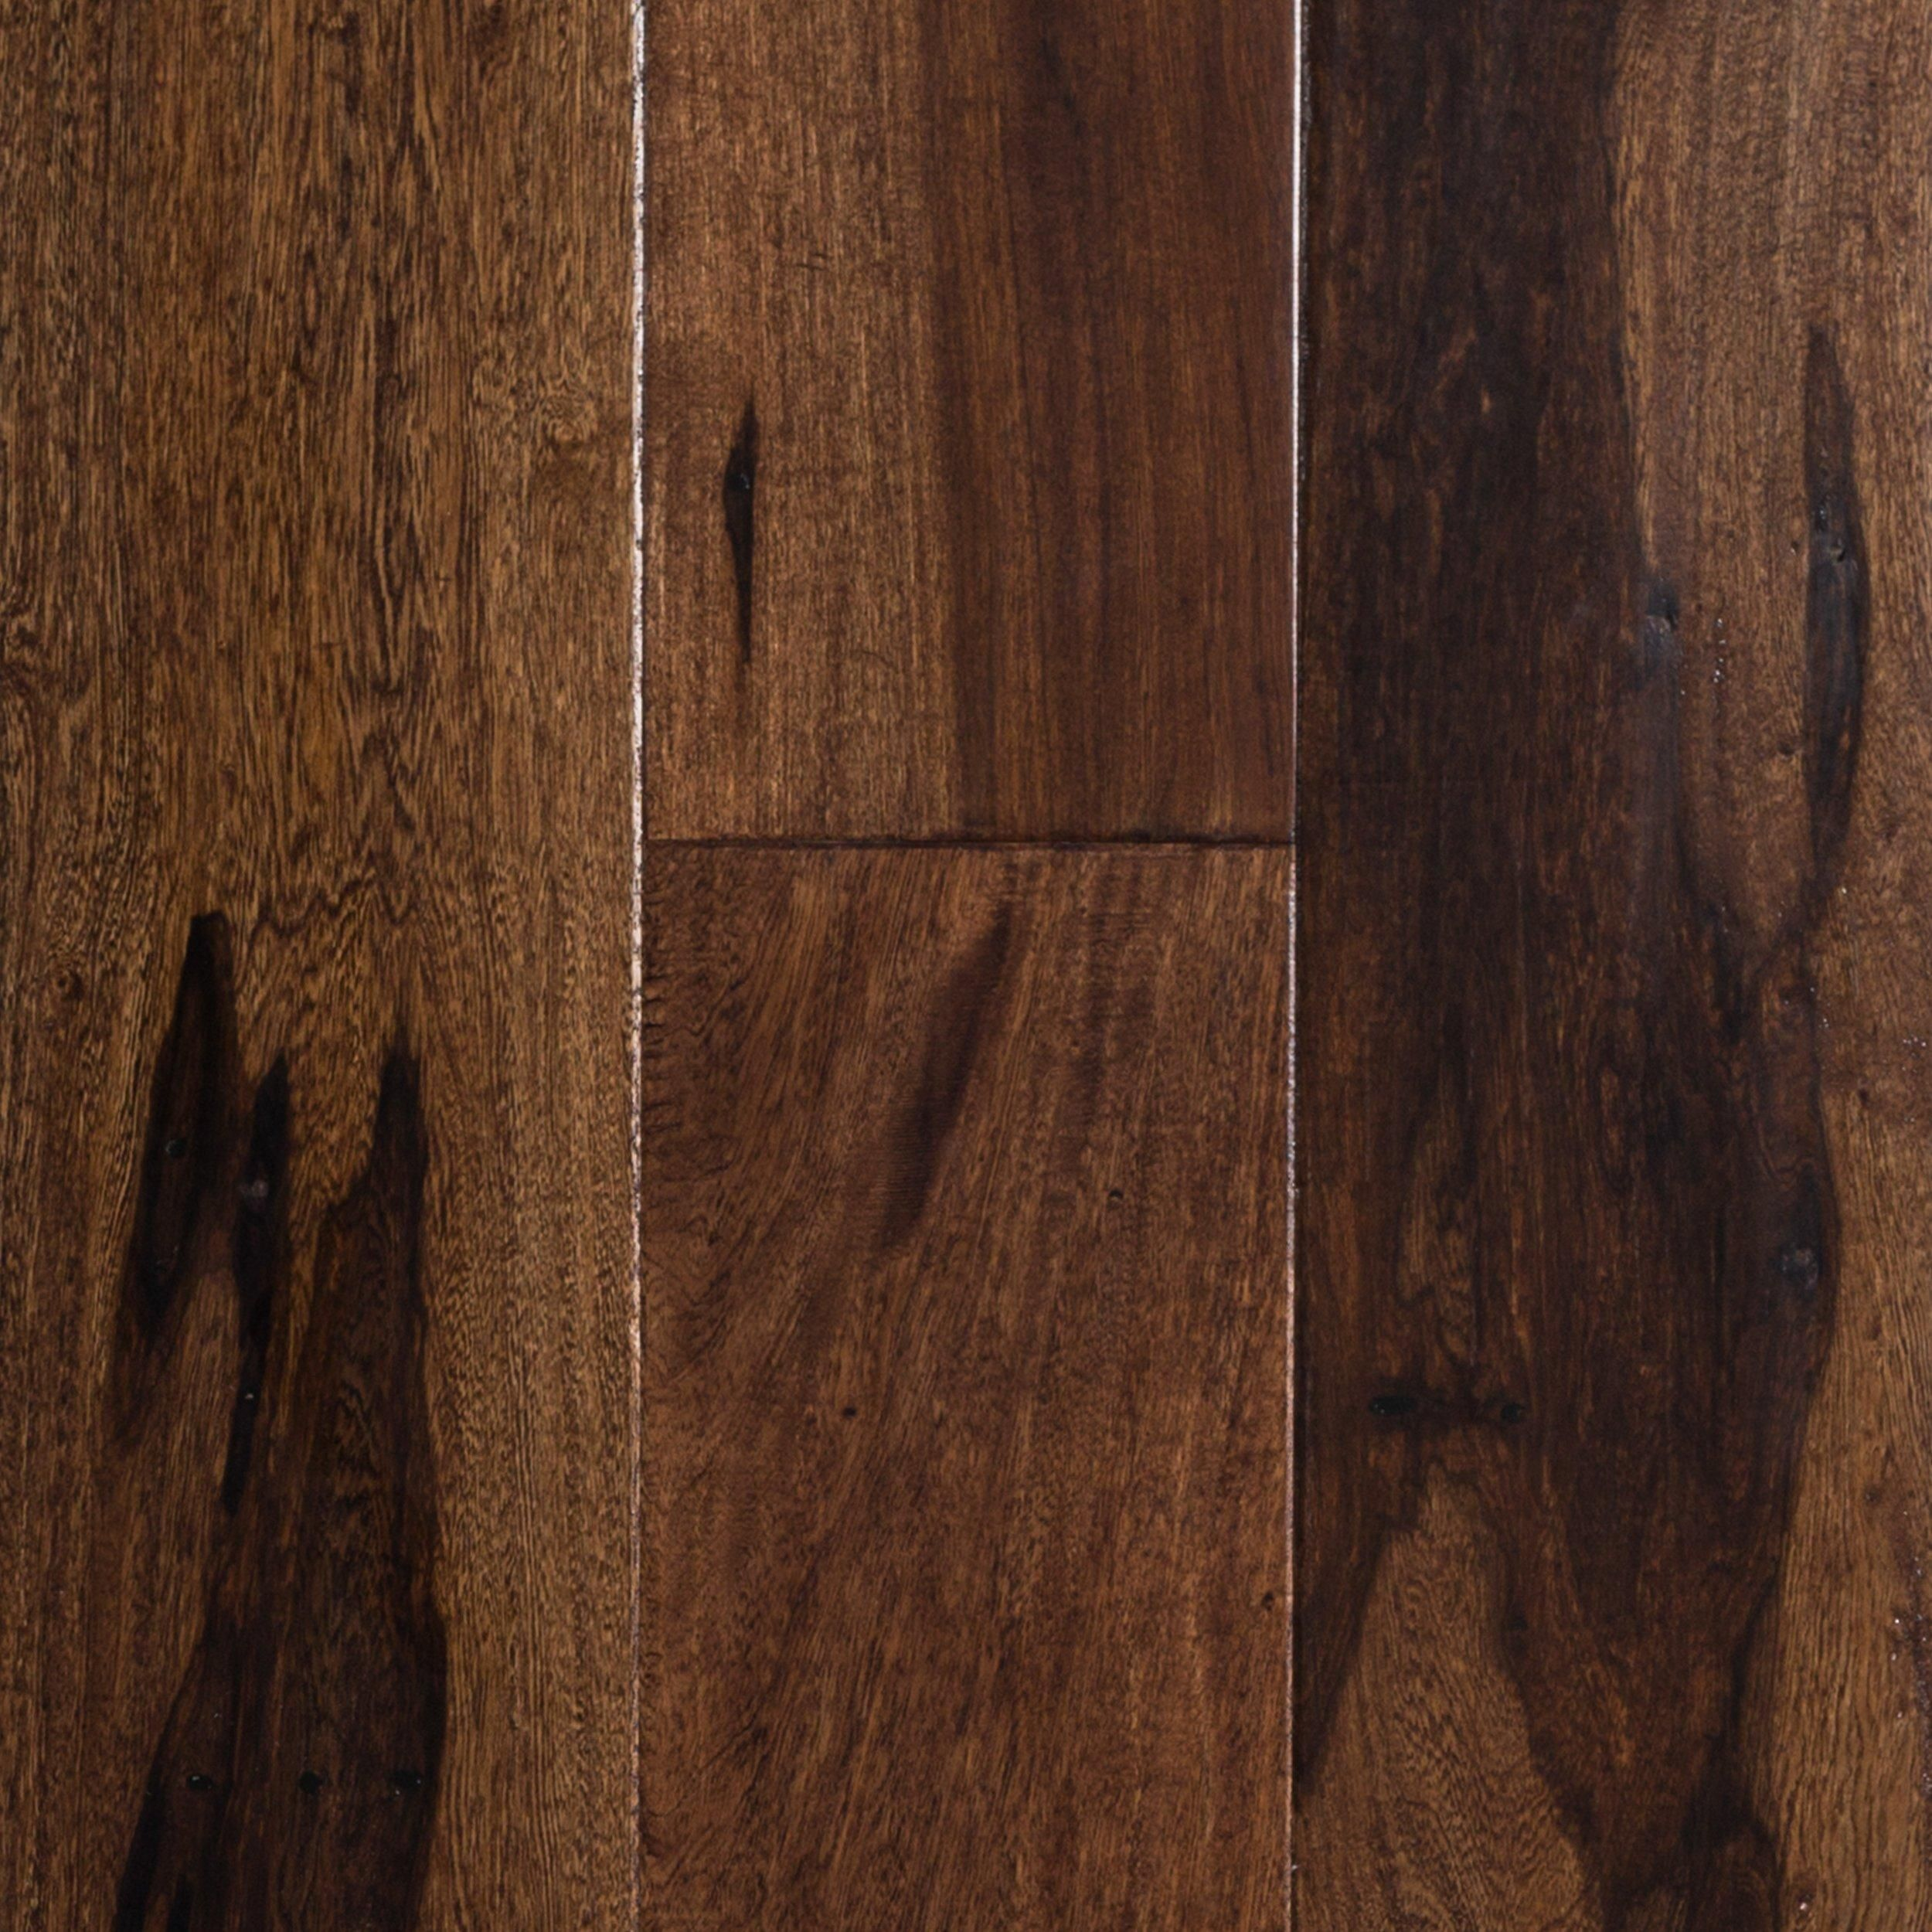 Pin On Laminate Flooring Prices